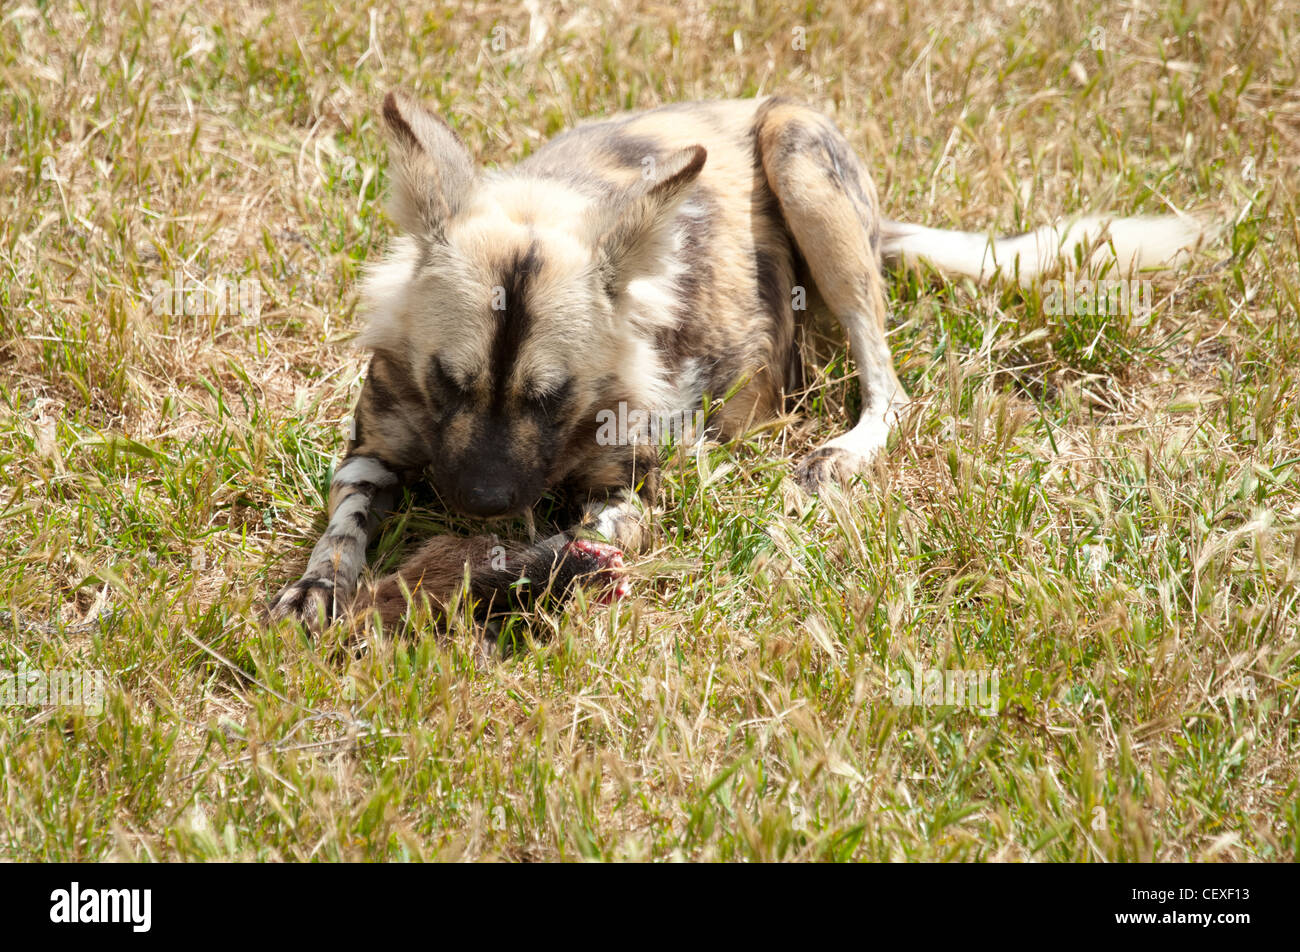 photo of a cape hunting dog eating meat - Stock Image